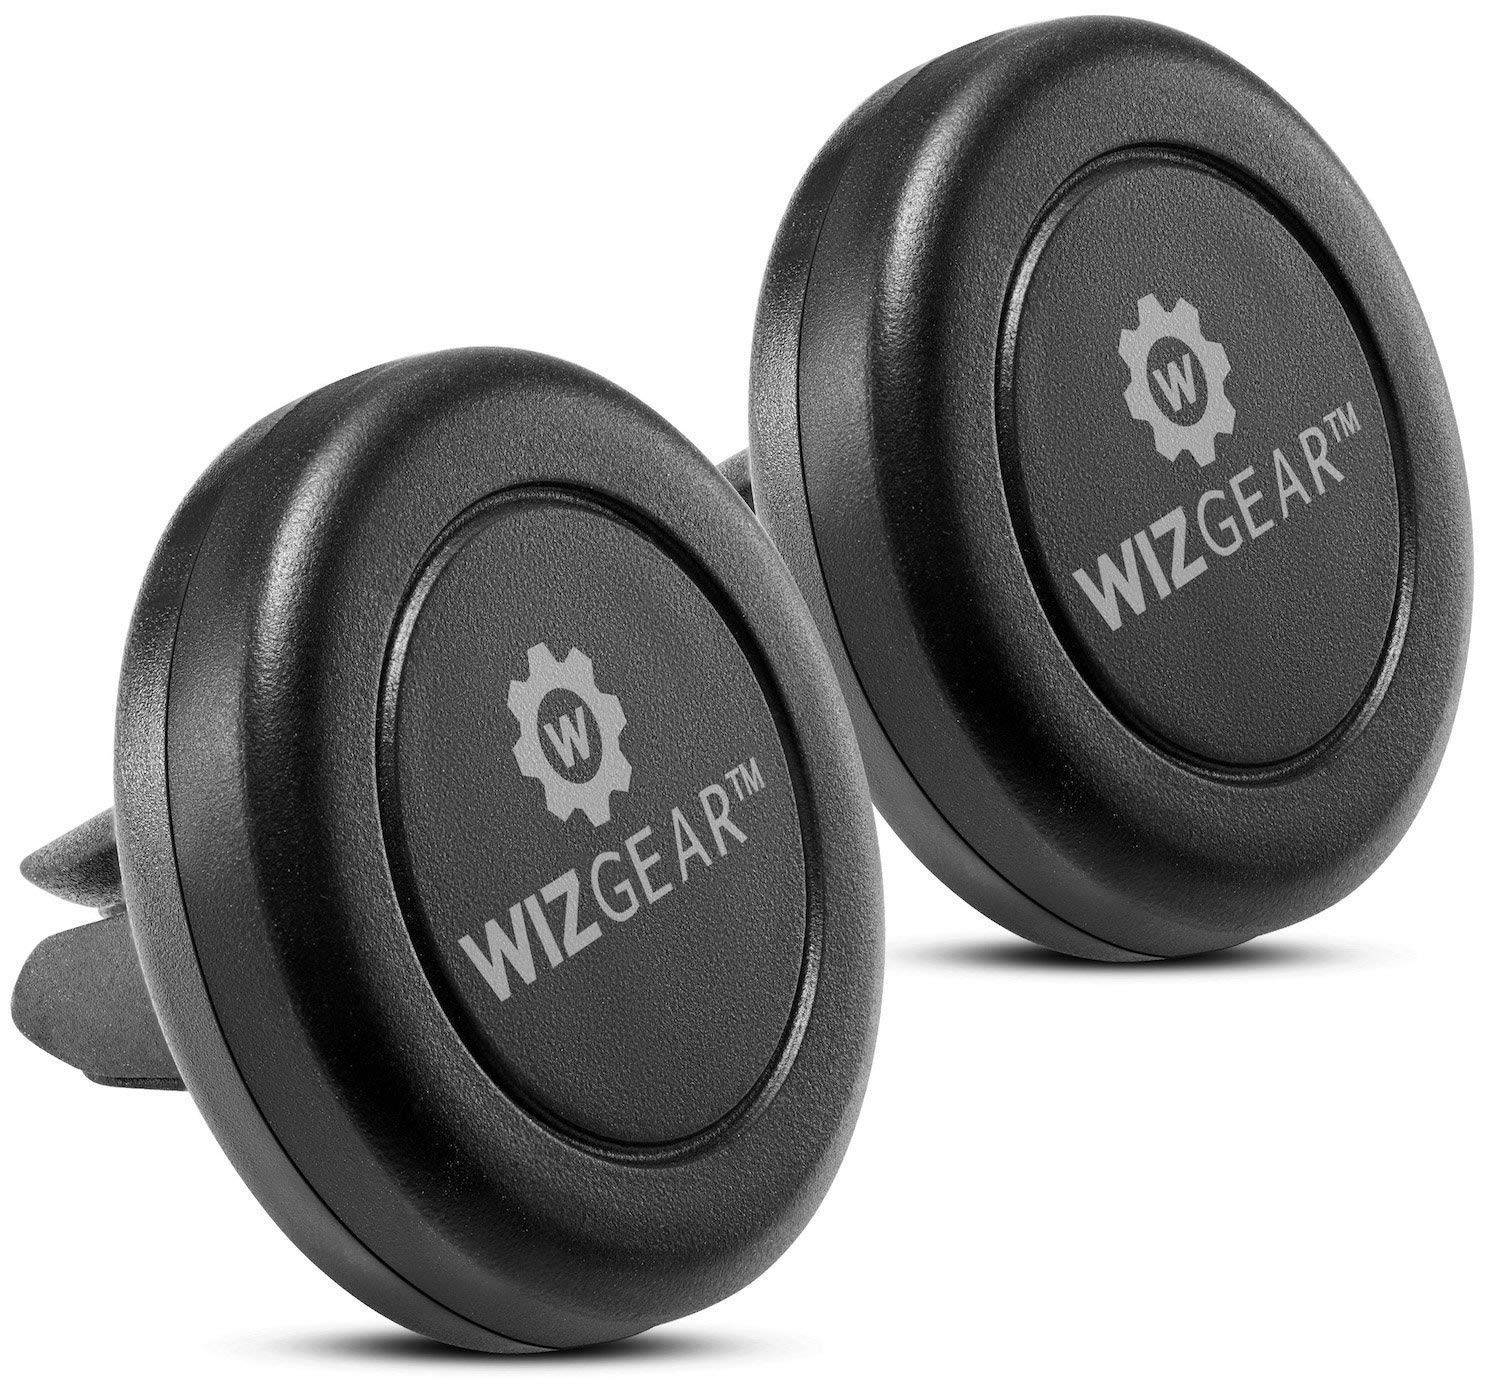 Magnetic Phone Mount, WizGear [2 Pack] Universal Air Vent Magnetic Car Mount Phone Holder, for Cell Phones and Mini Tablets with Fast Swift-Snap Technology, with 4 Metal Plates